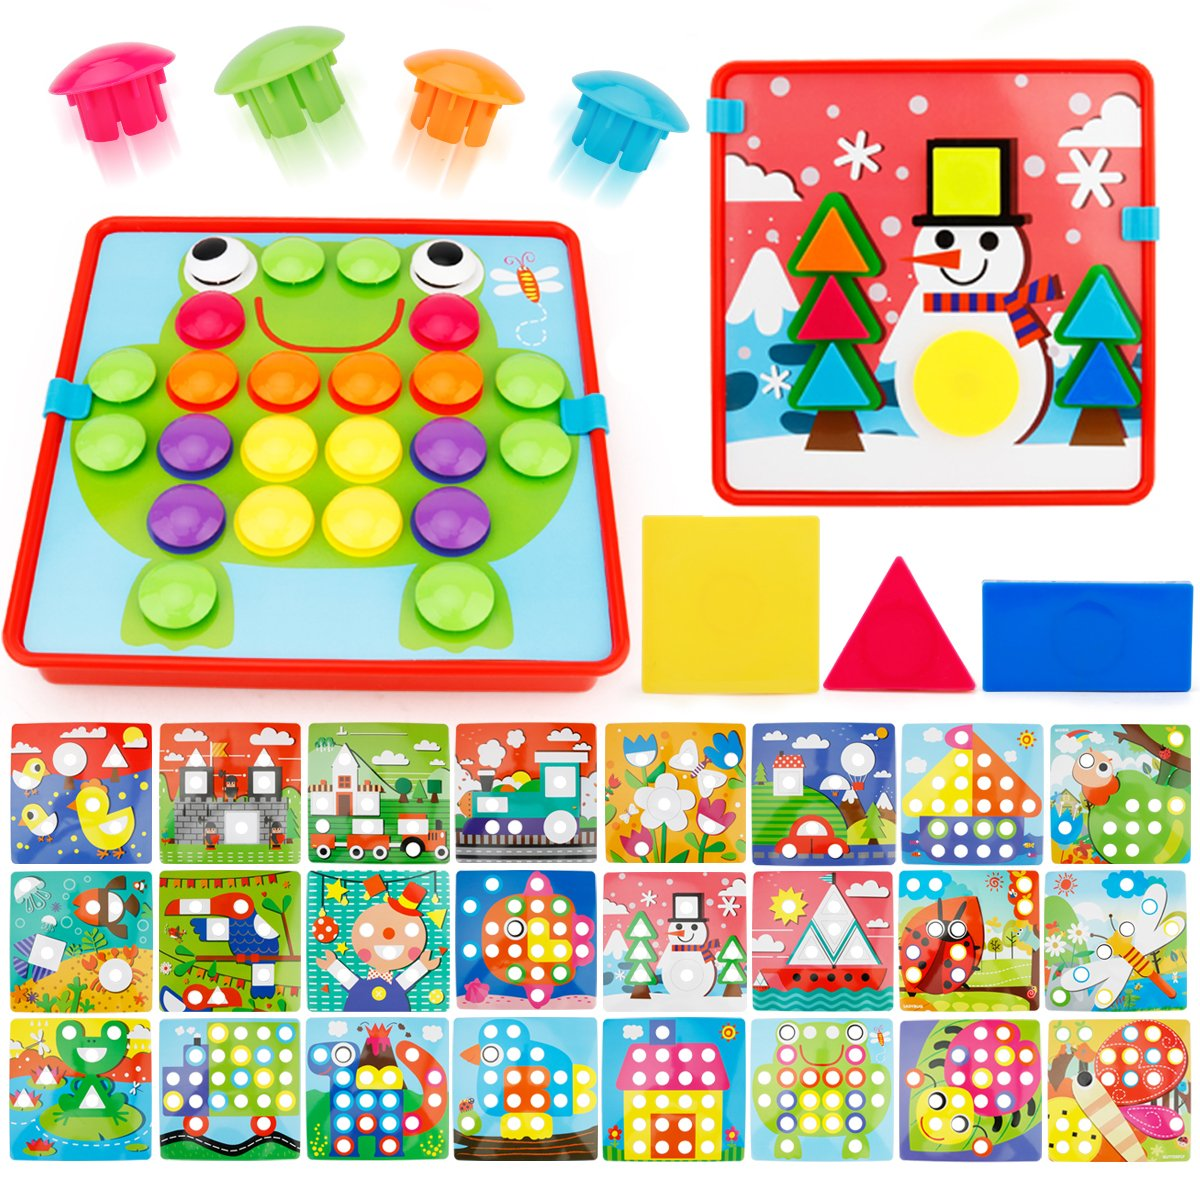 JoyGrow Button Art Color Matching Mosaic Pegboard Set Educational Toys Color & Geometry Shape Cognition Skill Learning Toddler Toys for Boys Girls (72 PCS Buttons and 24 templates ) Review